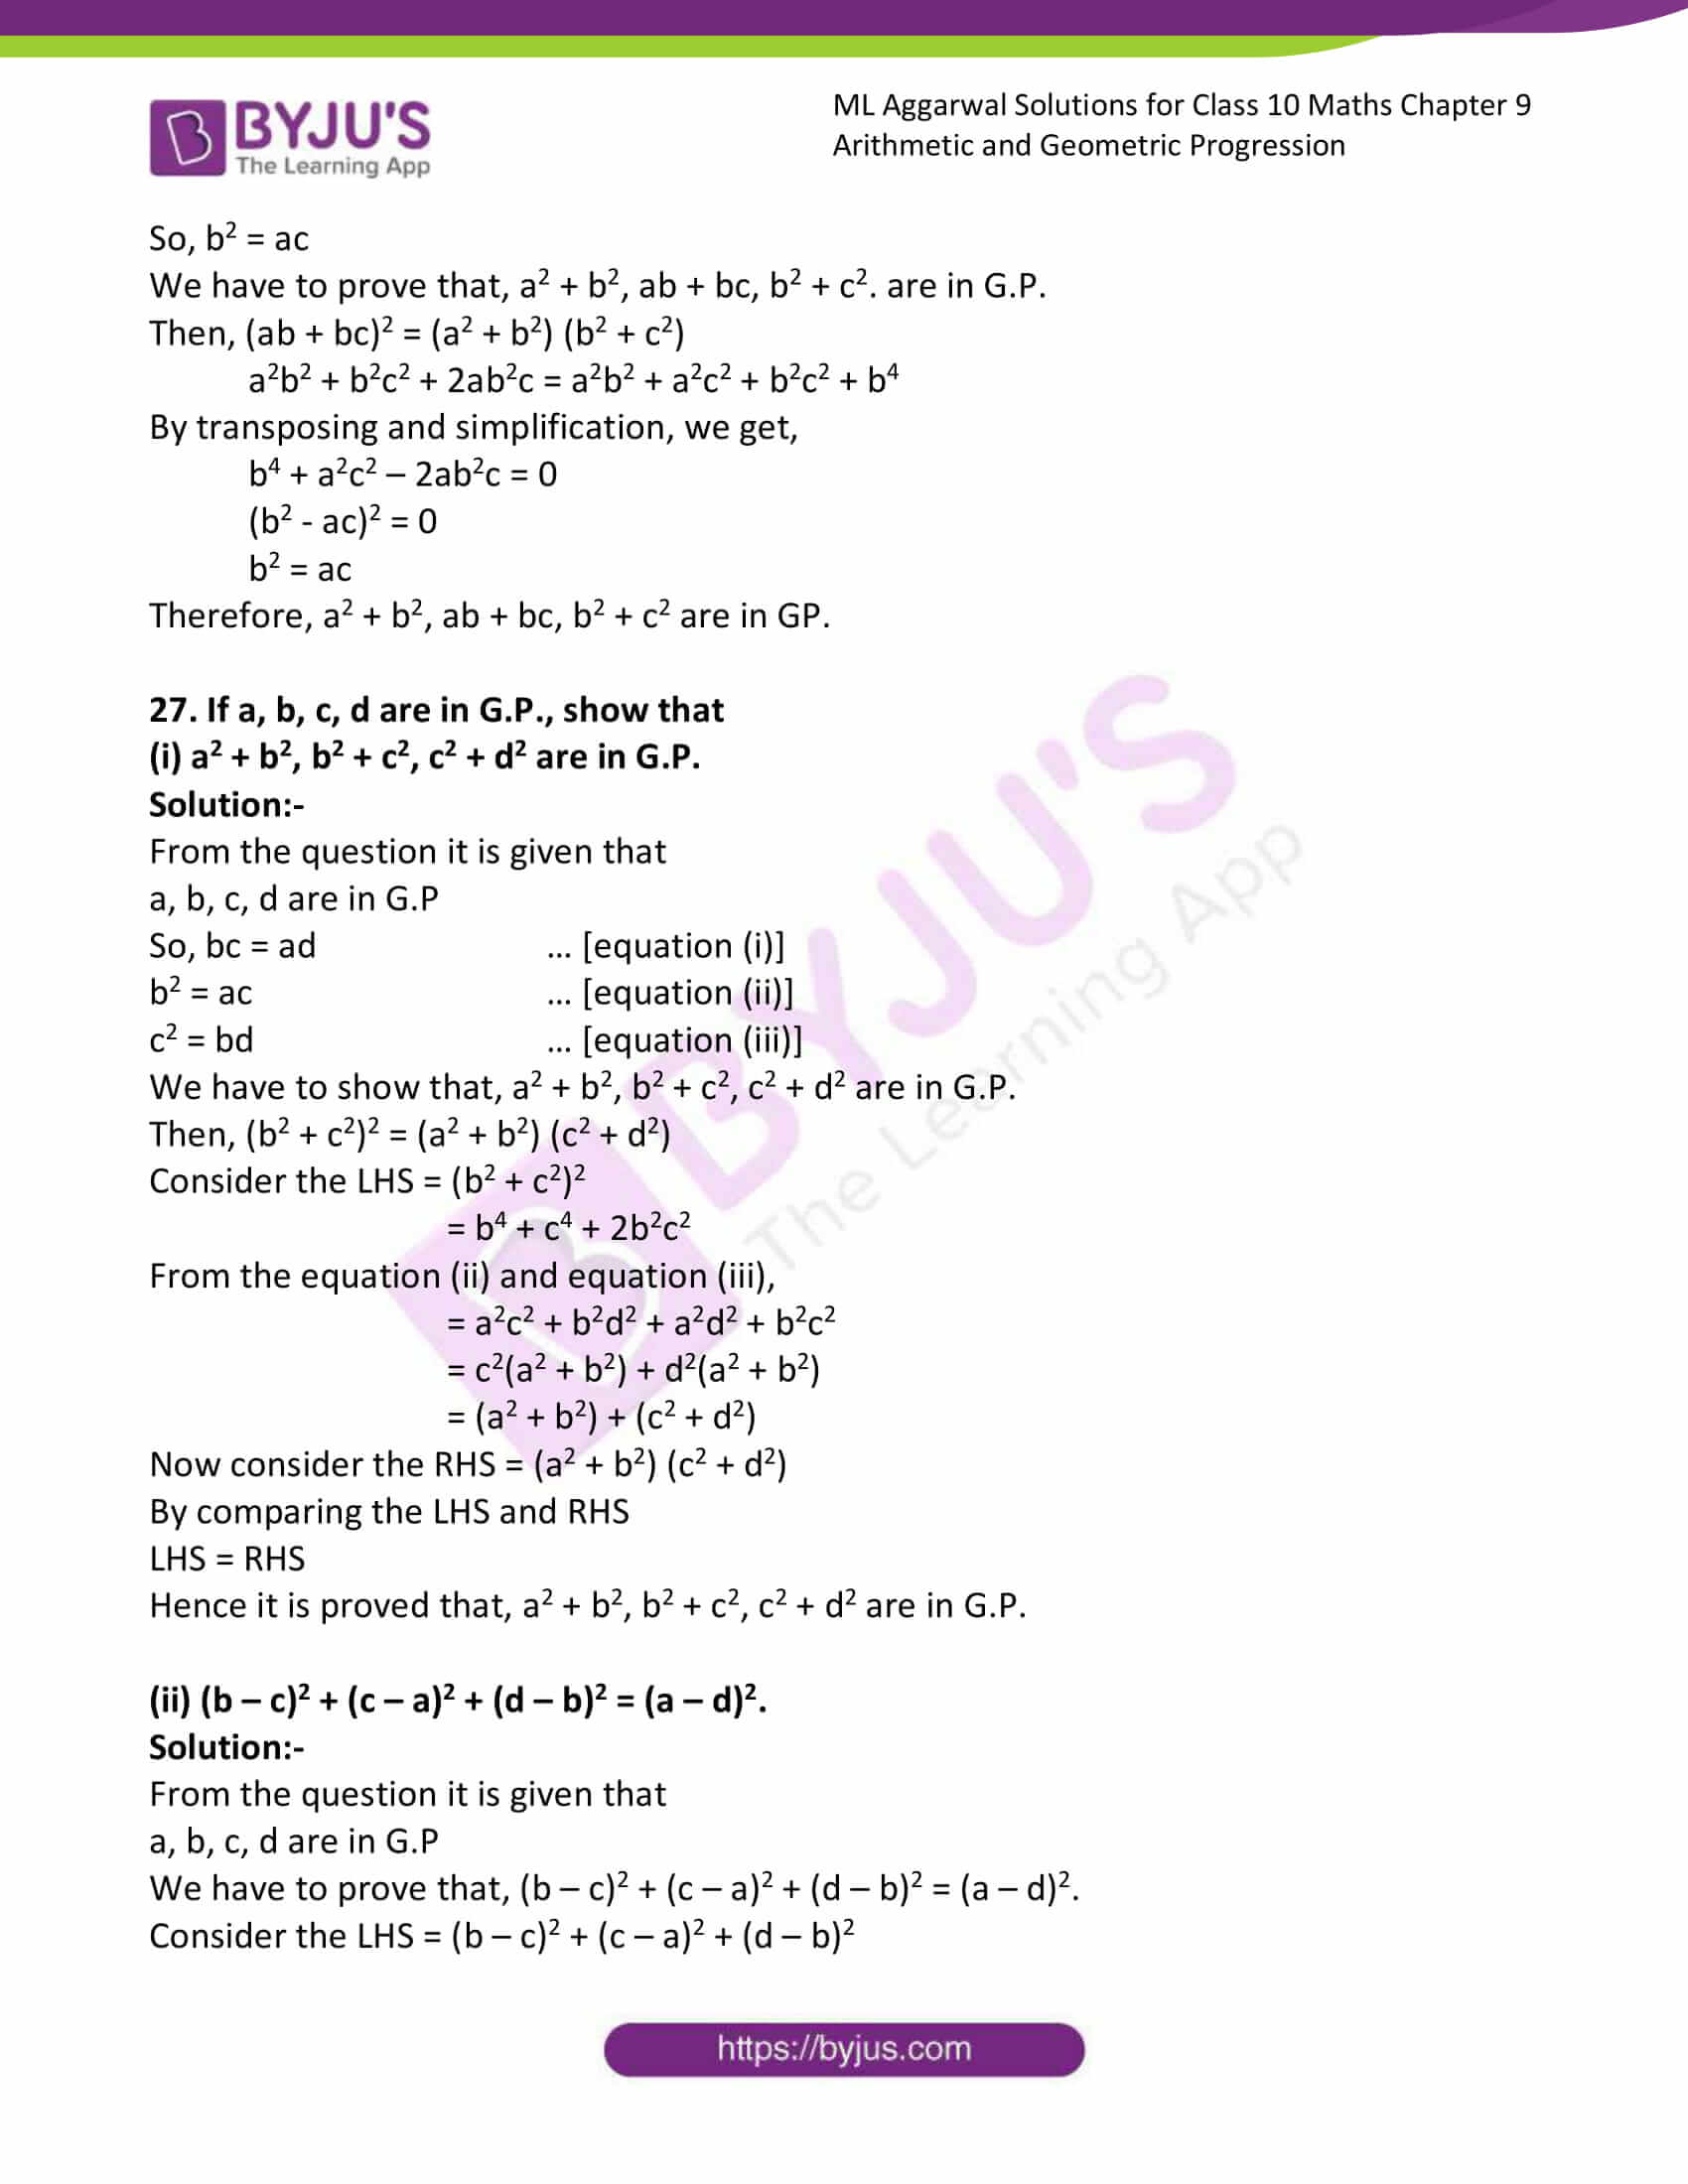 ml aggarwal solutions class 10 maths chapter 9 62